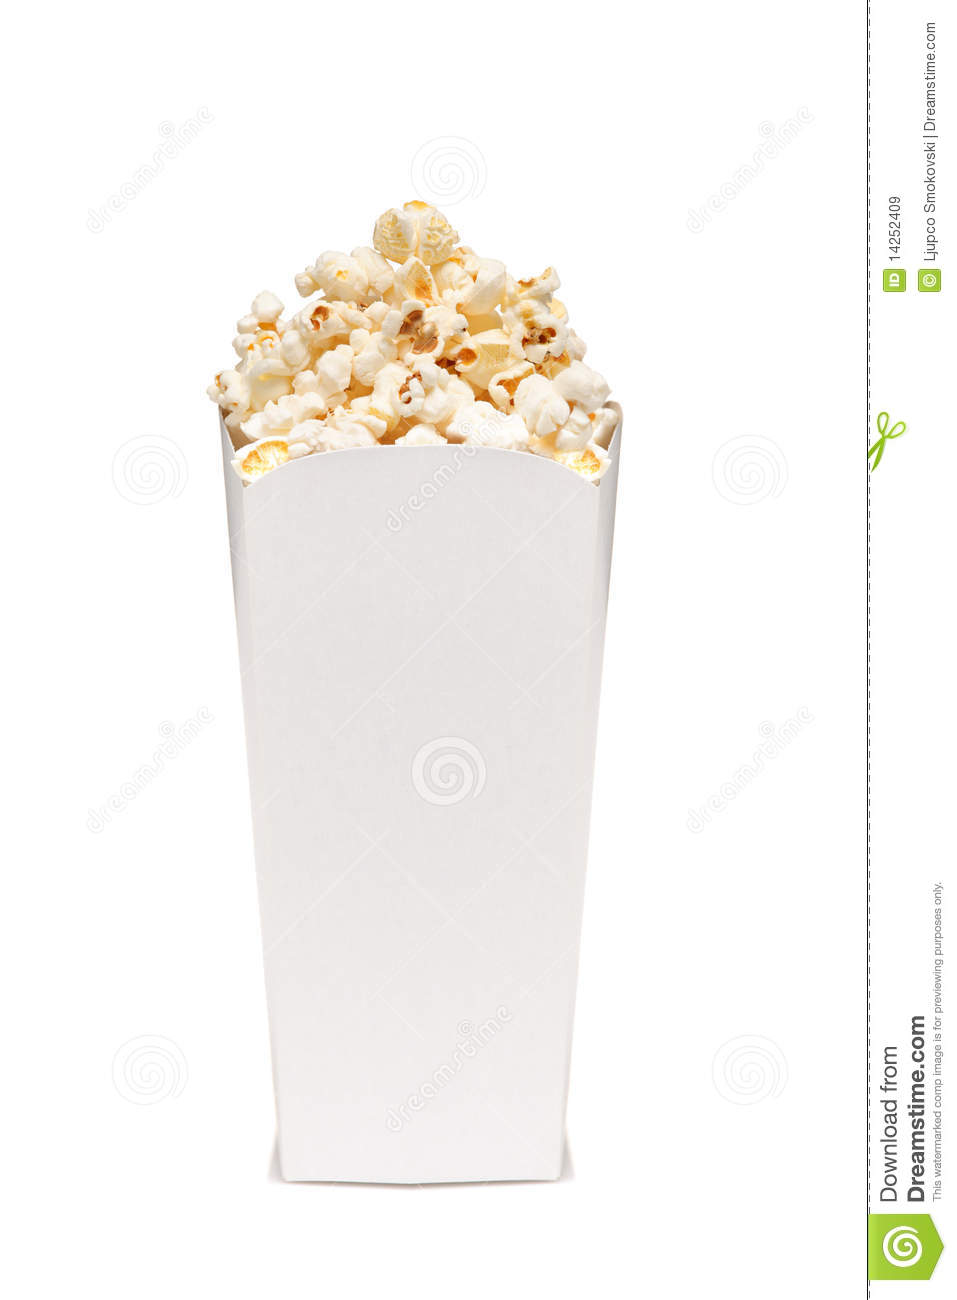 Popcorn In Box Royalty Free Stock Images - Image: 14252409